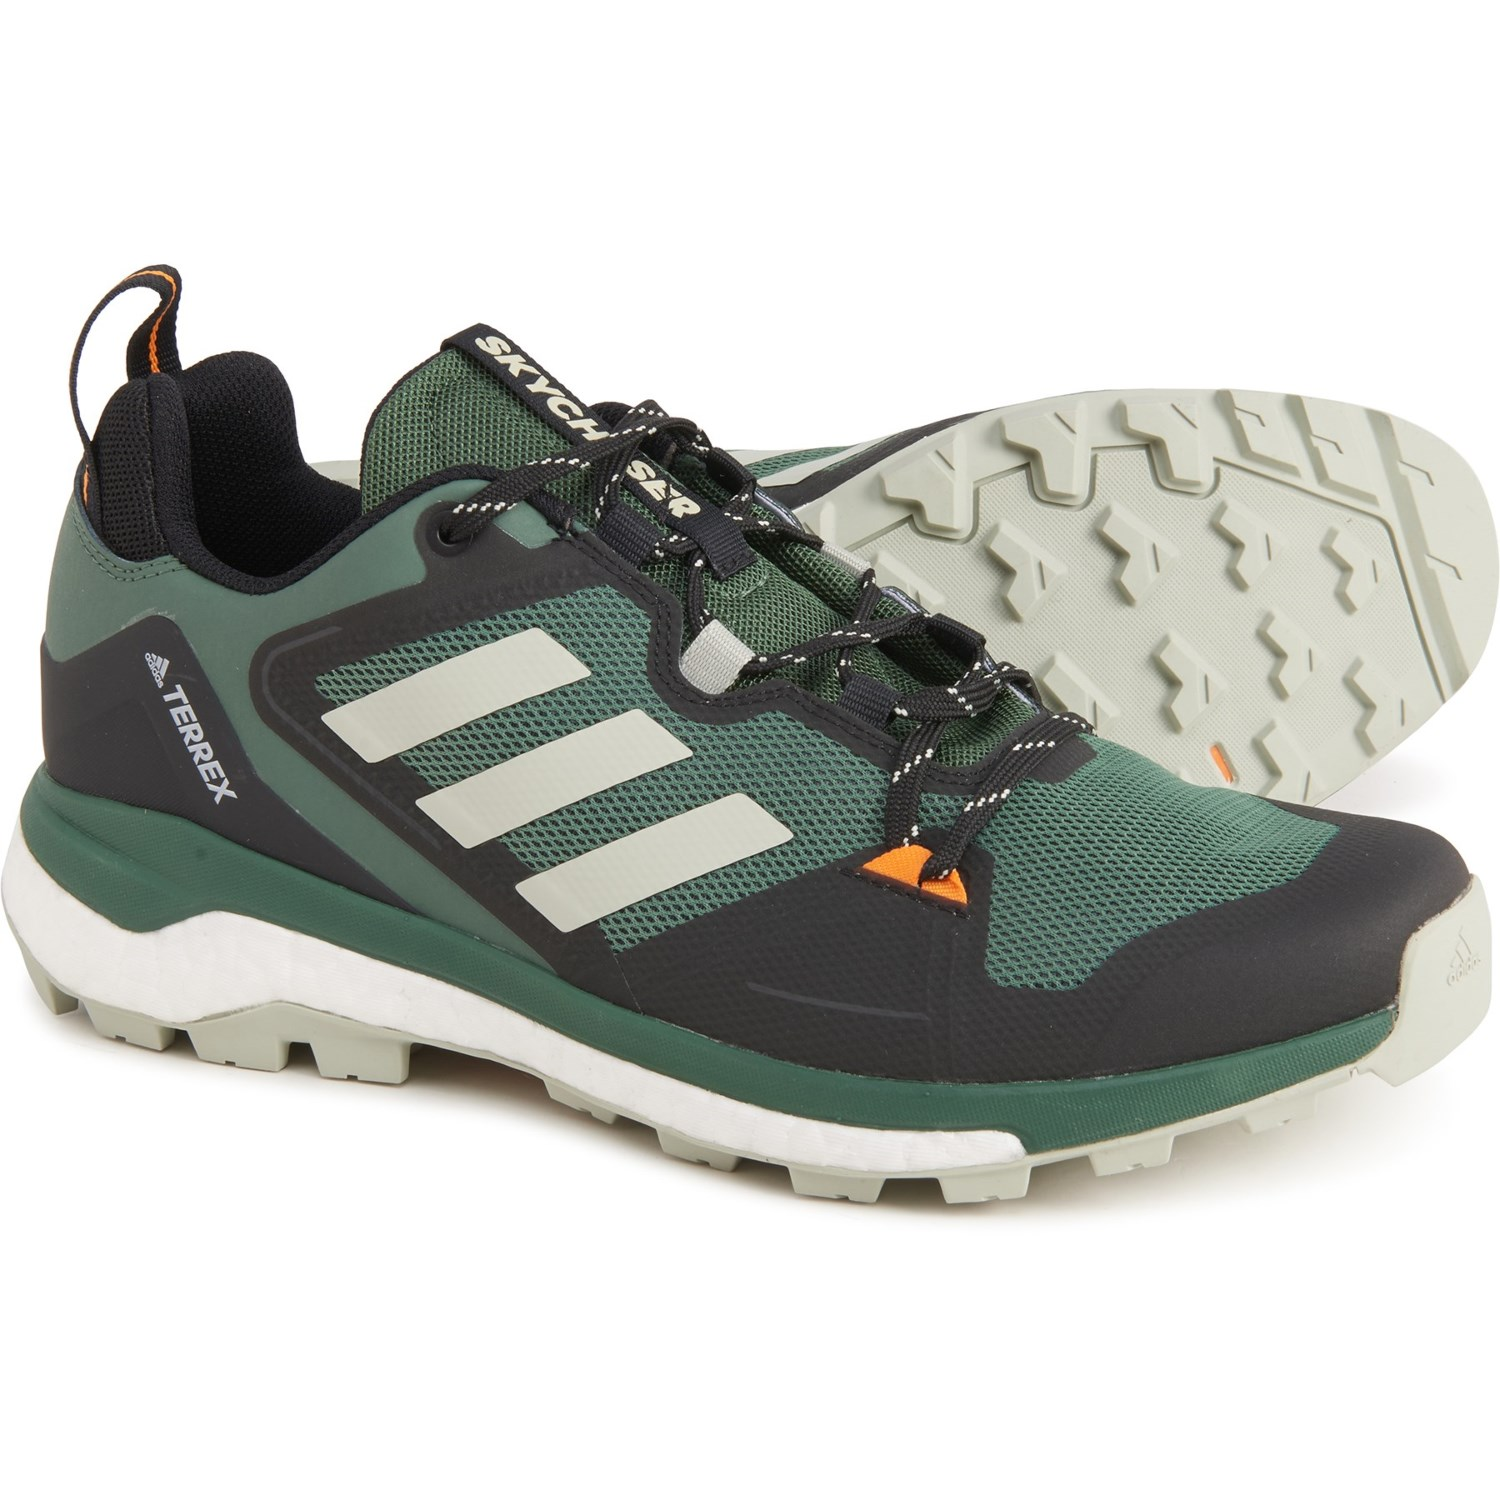 adidas outdoor Terrex Skychaser 2.0 Hiking Shoes (For Men) - Save 38%